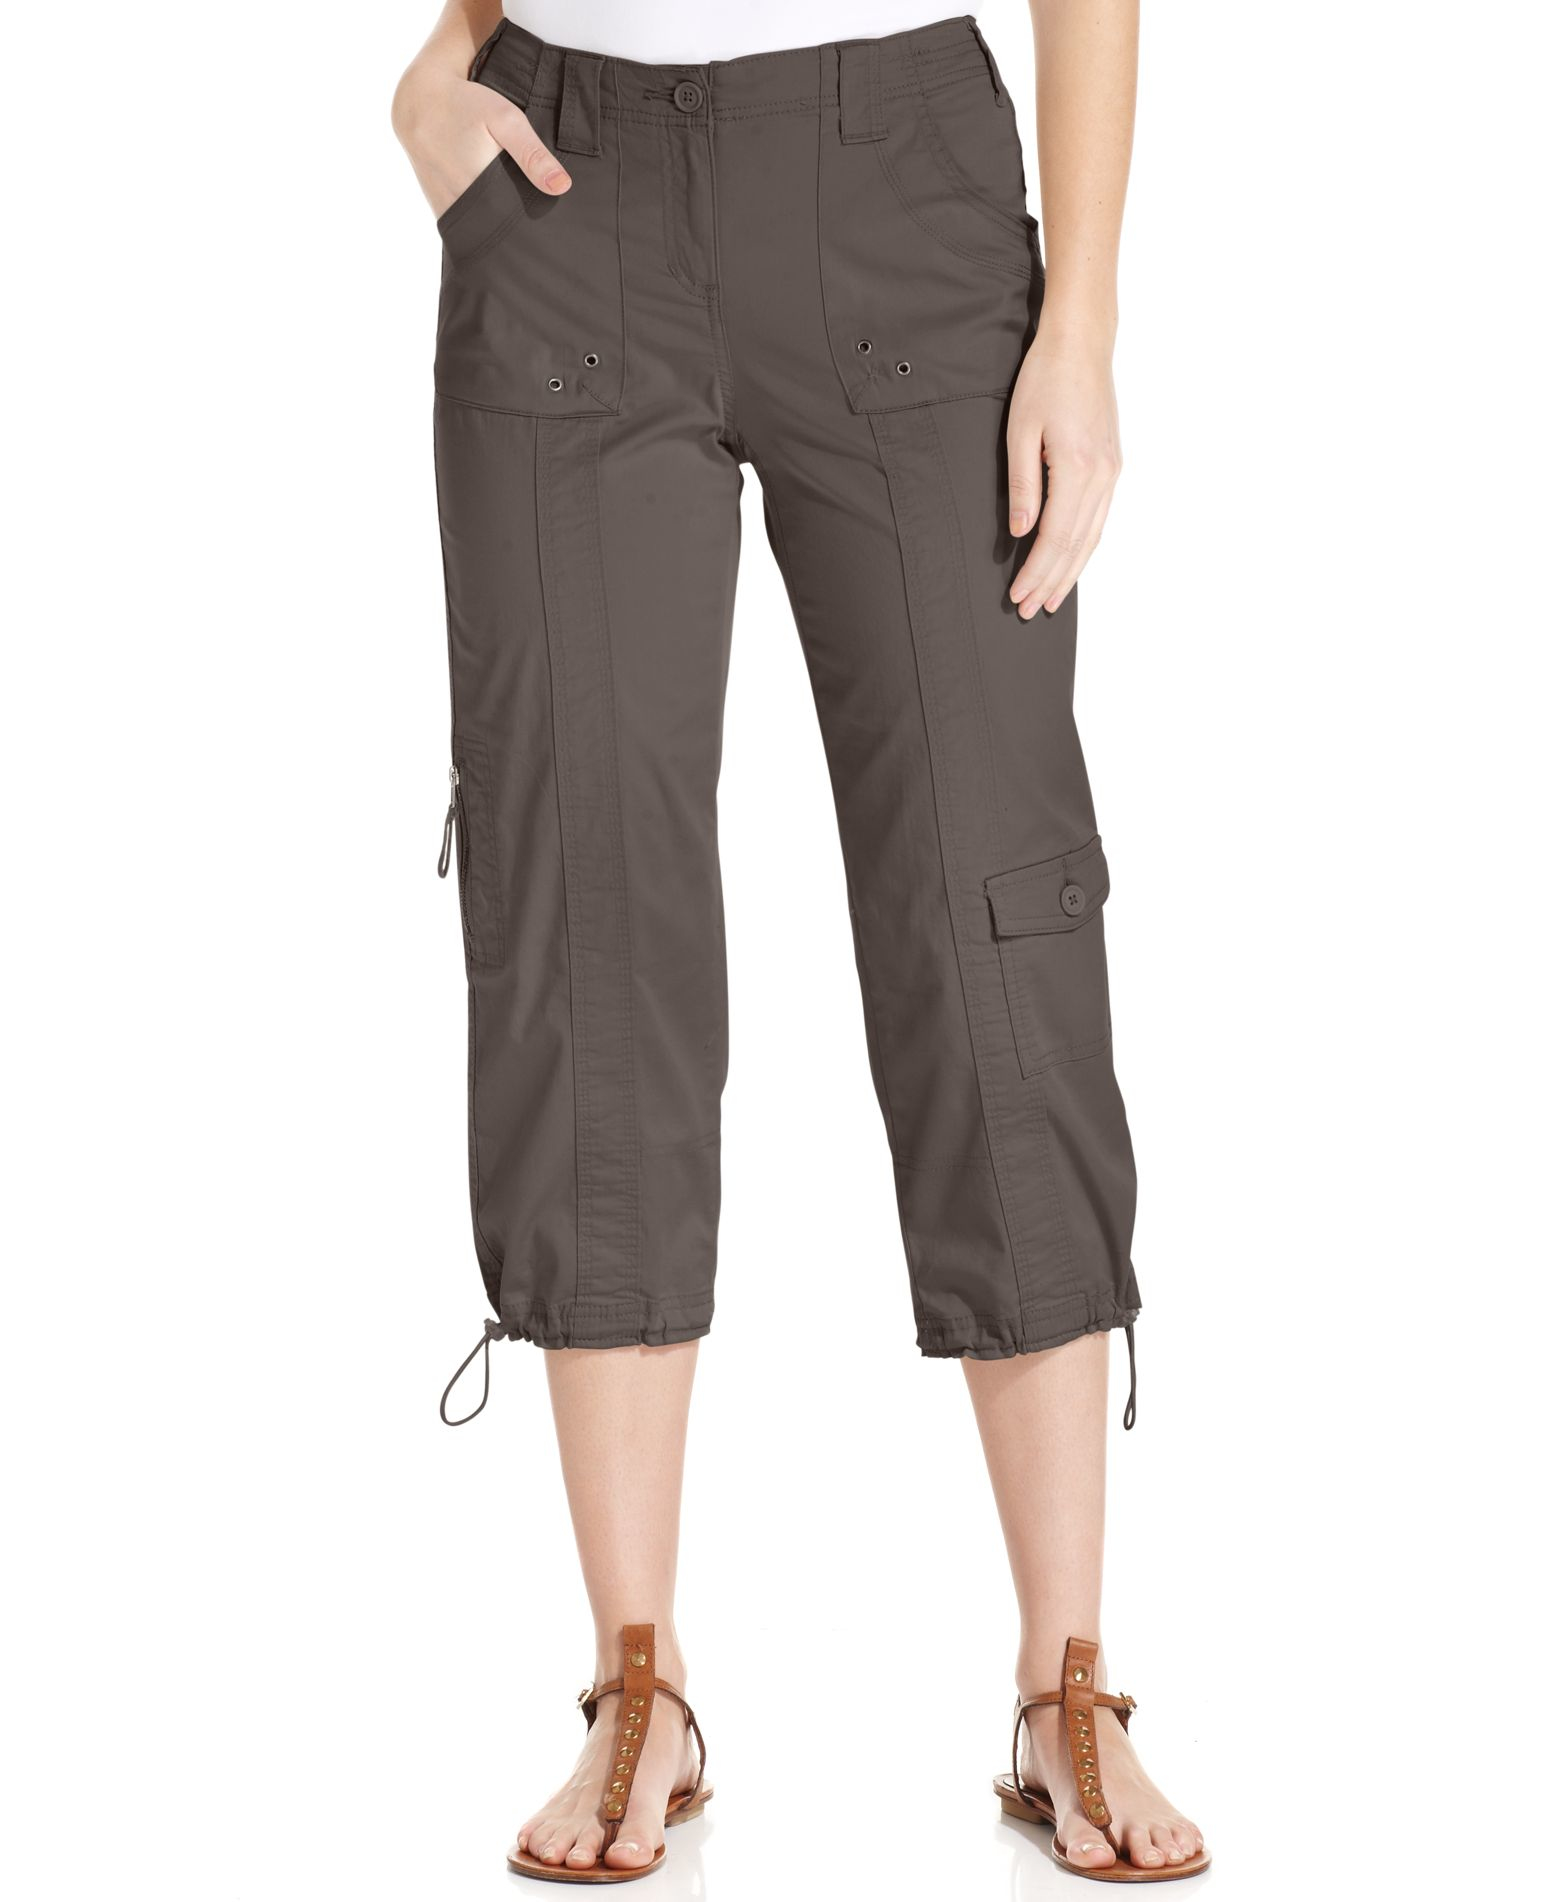 Popular BLUE POINTE JEANS Juniors Womens Stretch Premium BROWN Cargo Pants 3054ES At Amazon Womenu2019s ...